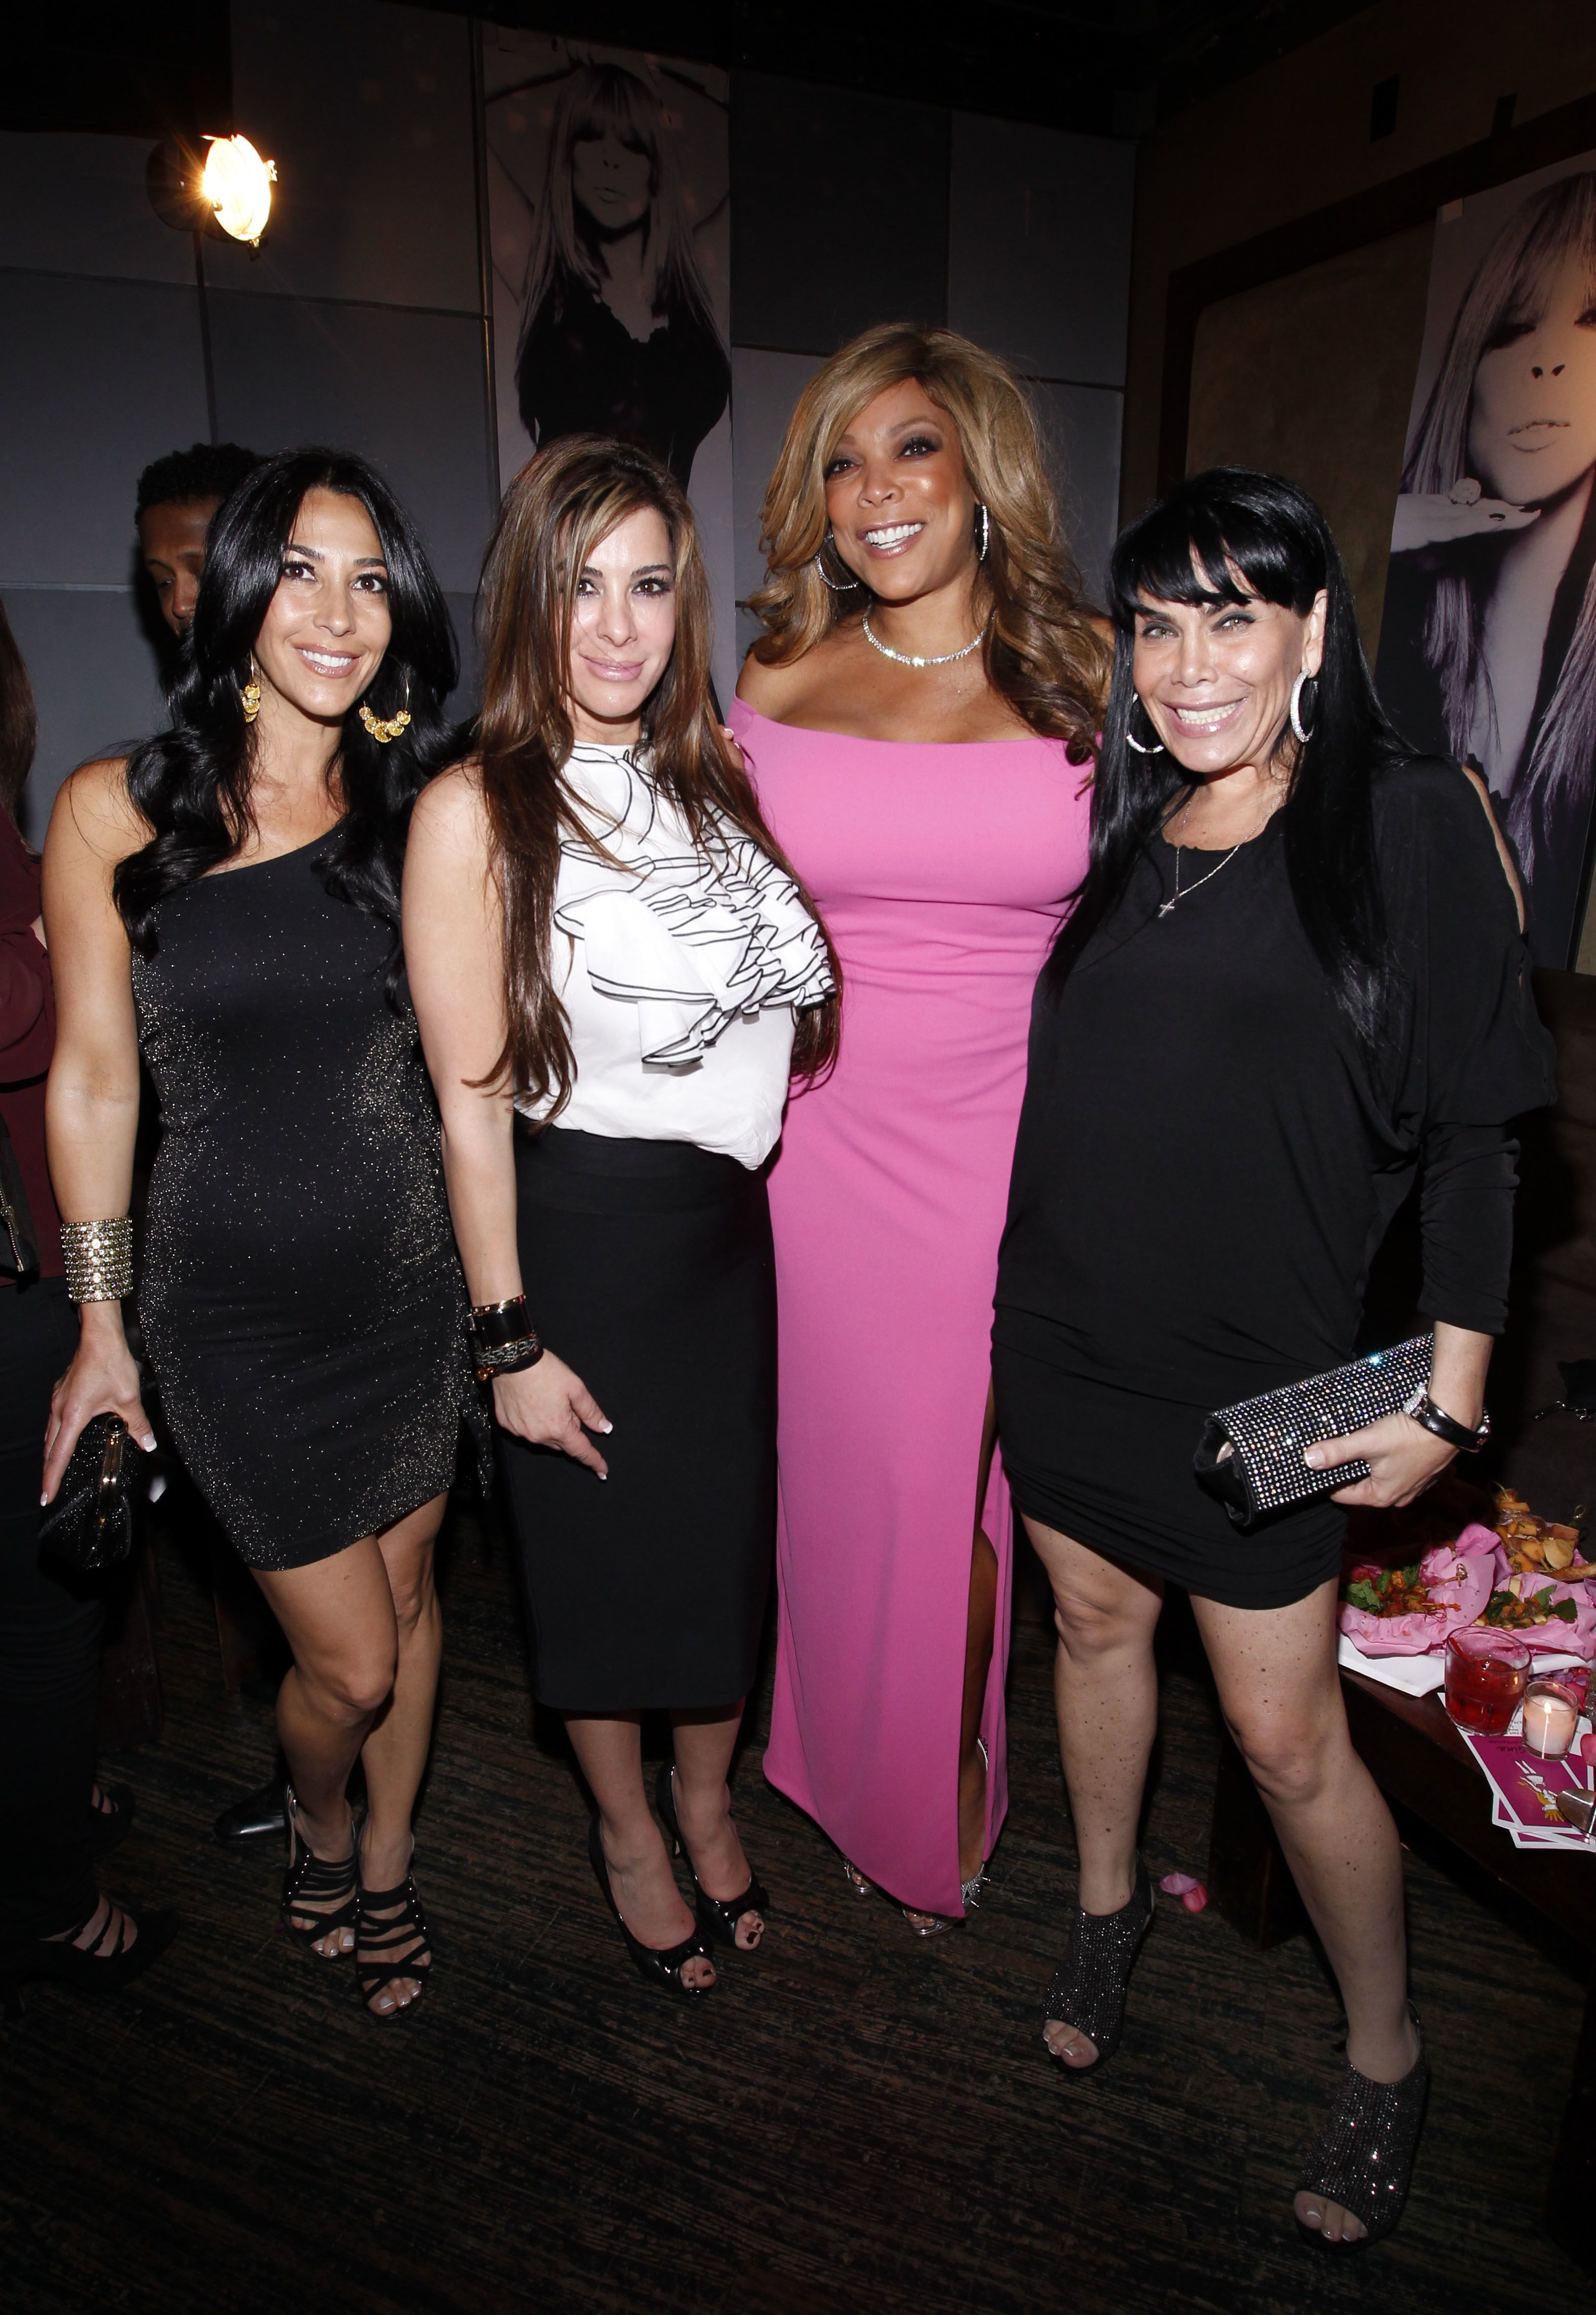 Party Photos: Wendy Williams Celebrates 500th Episode In NYC With ...